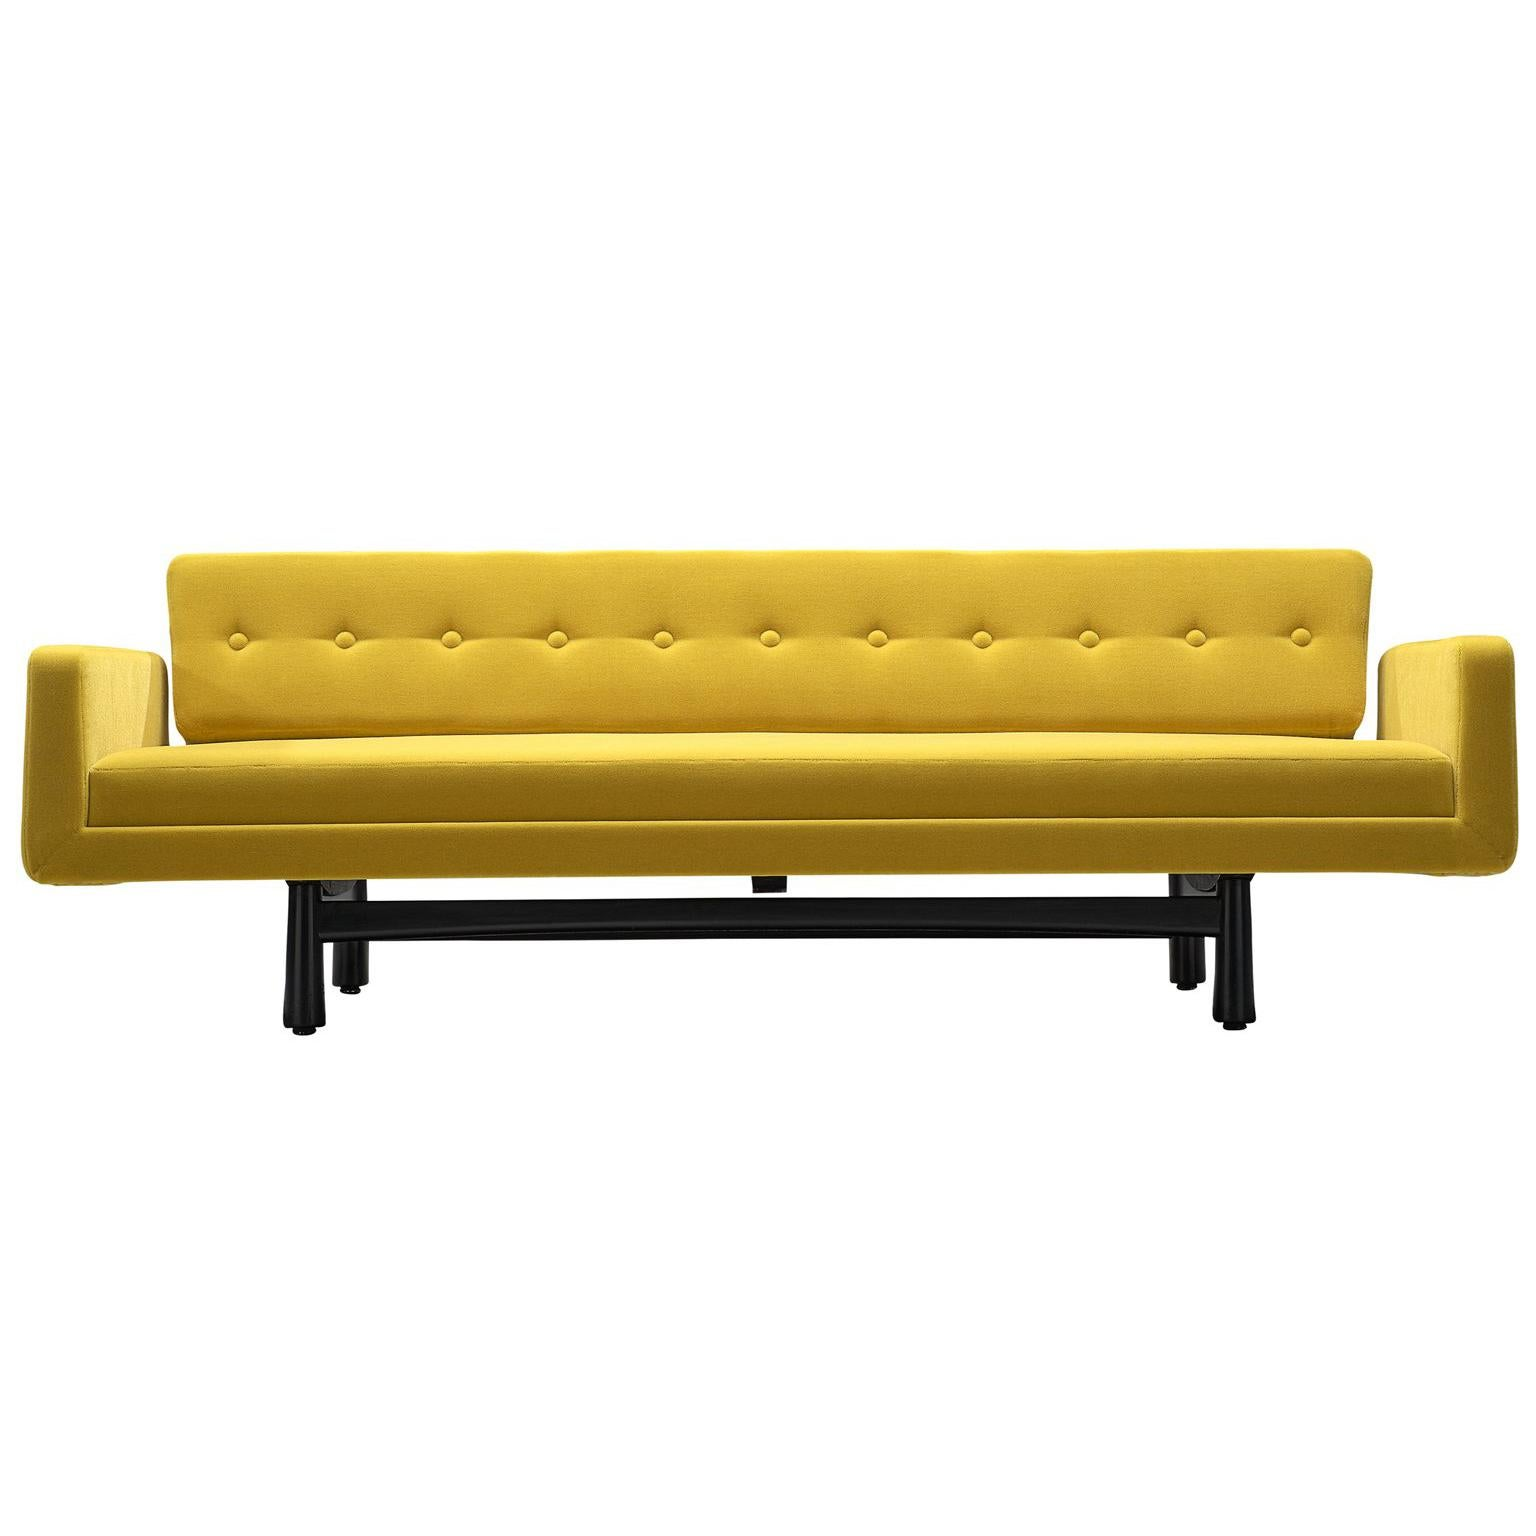 reupholster sofa south london solid wood malaysia antique and vintage sofas 7 231 for sale at 1stdibs edward wormley reupholstered yellow model 5316